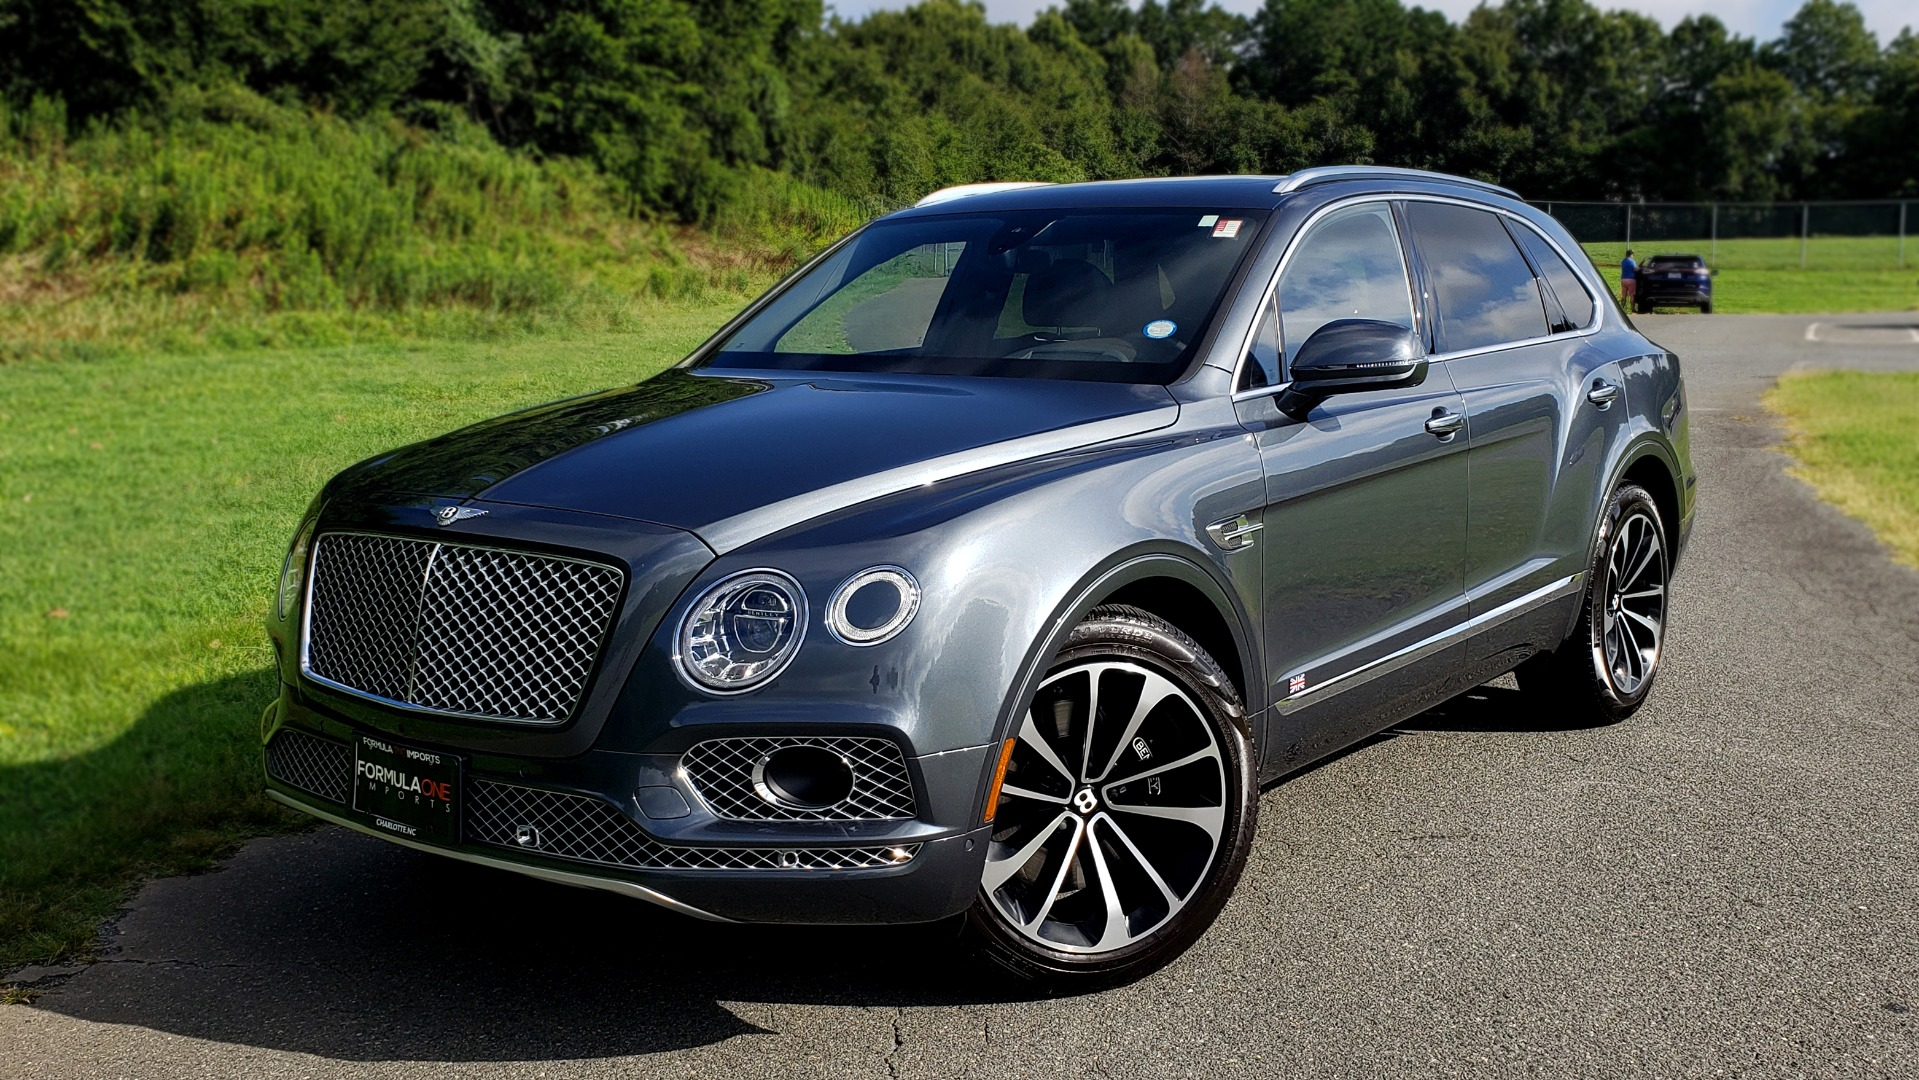 Used 2017 Bentley BENTAYGA W12 600HP / NAV / HTD SEATS / PANO-ROOF / REARVIEW / 21IN WHEELS for sale $149,995 at Formula Imports in Charlotte NC 28227 1